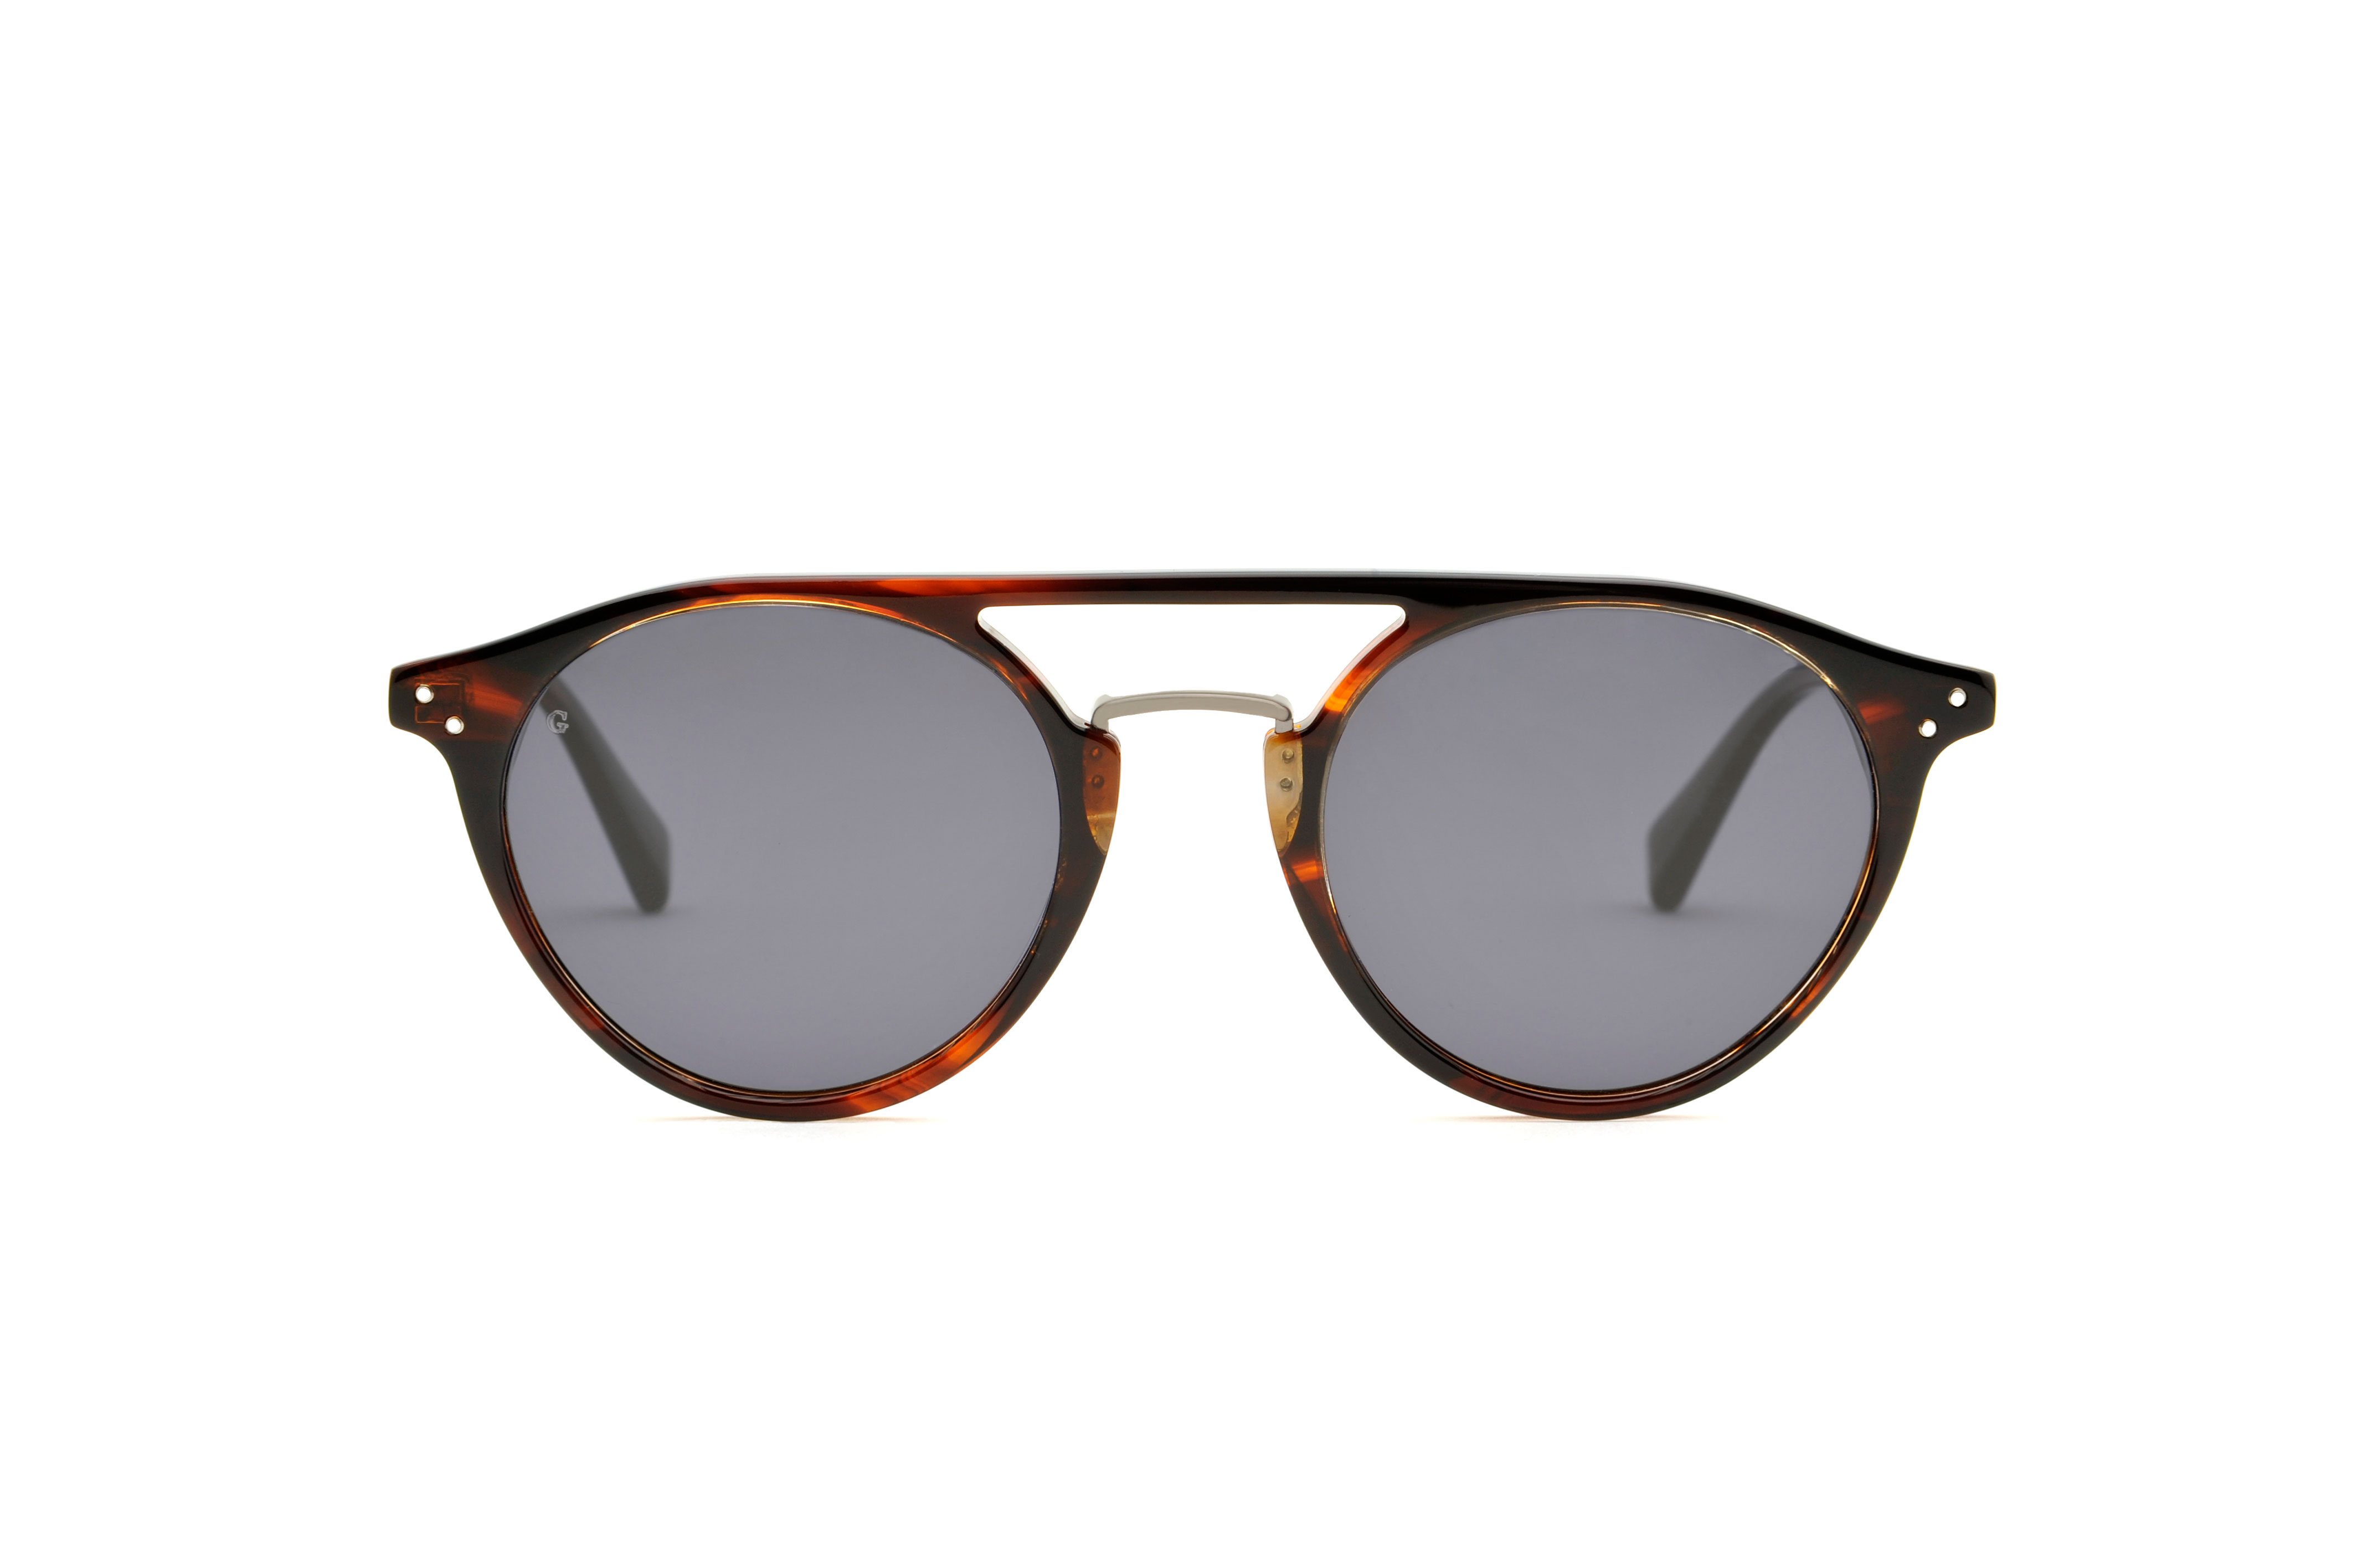 District acetate/metal aviator brown sunglasses by GIGI Studios